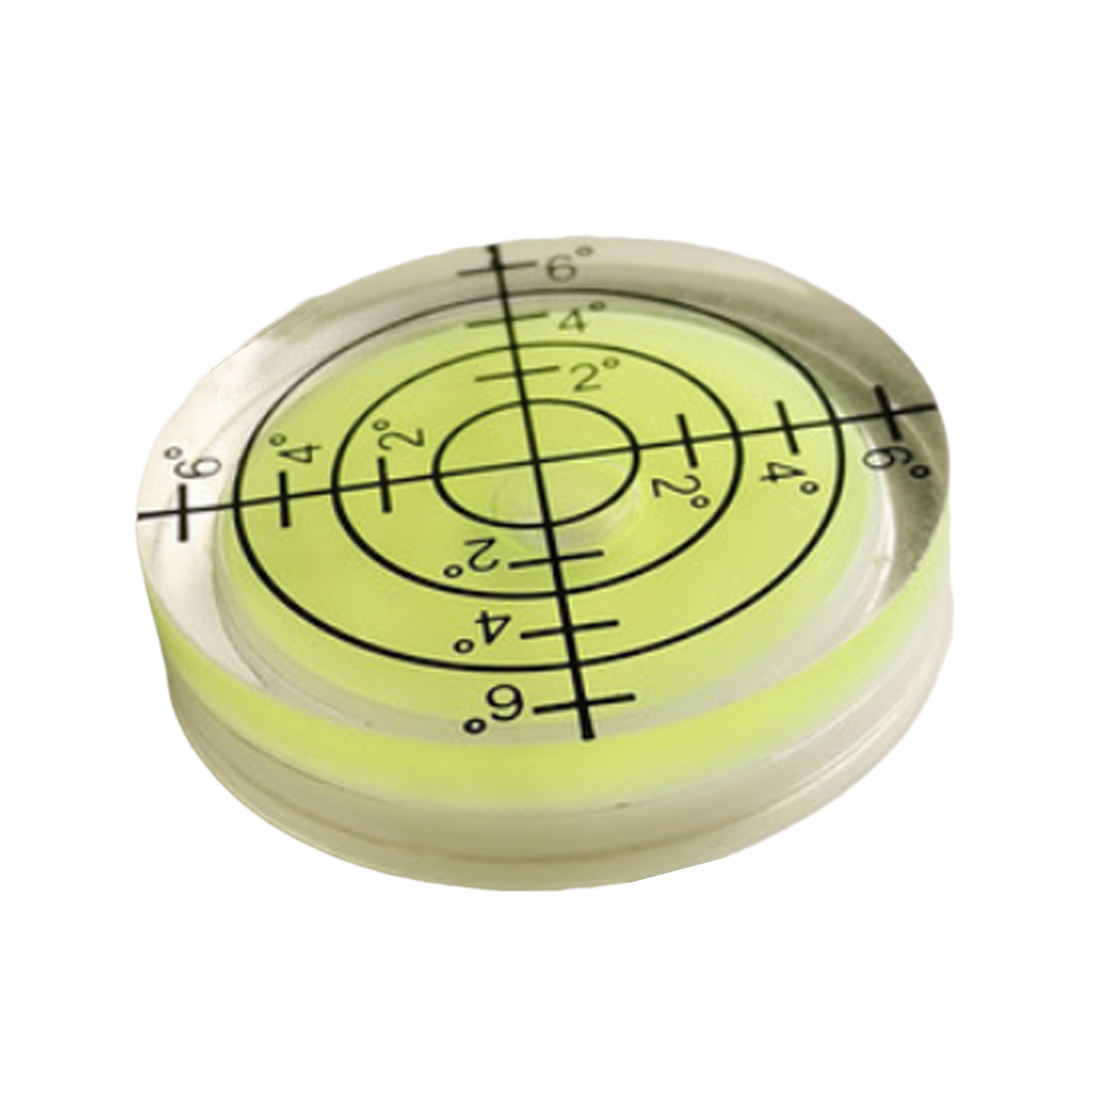 High quality 1pcs 32*7MM White Green Blue Color Bullseye Bubble level Round Level Bubble Accessories for Measuring Instrument variety models available round bubble level mini spirit level bubble bullseye level measurement instrument